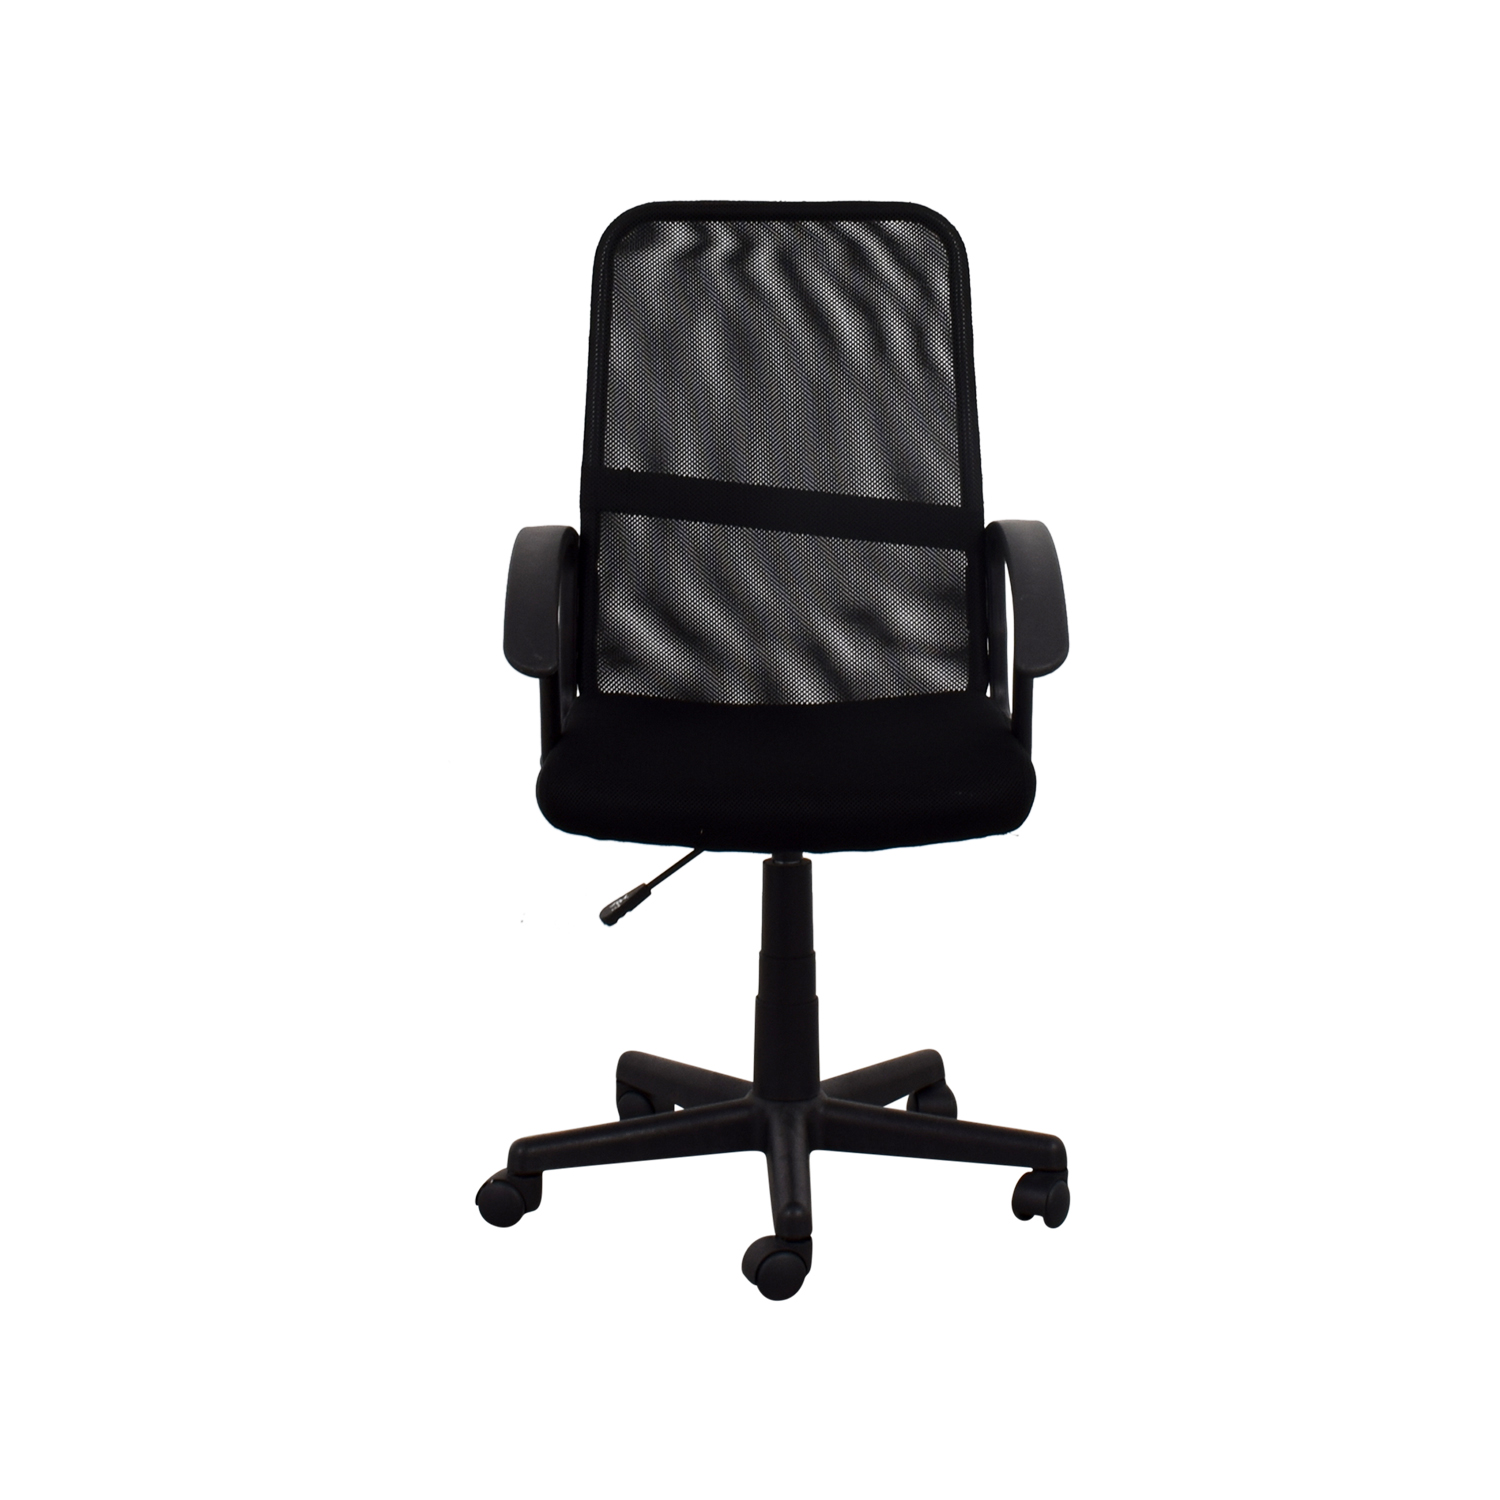 Black Mesh Computer Chair dimensions